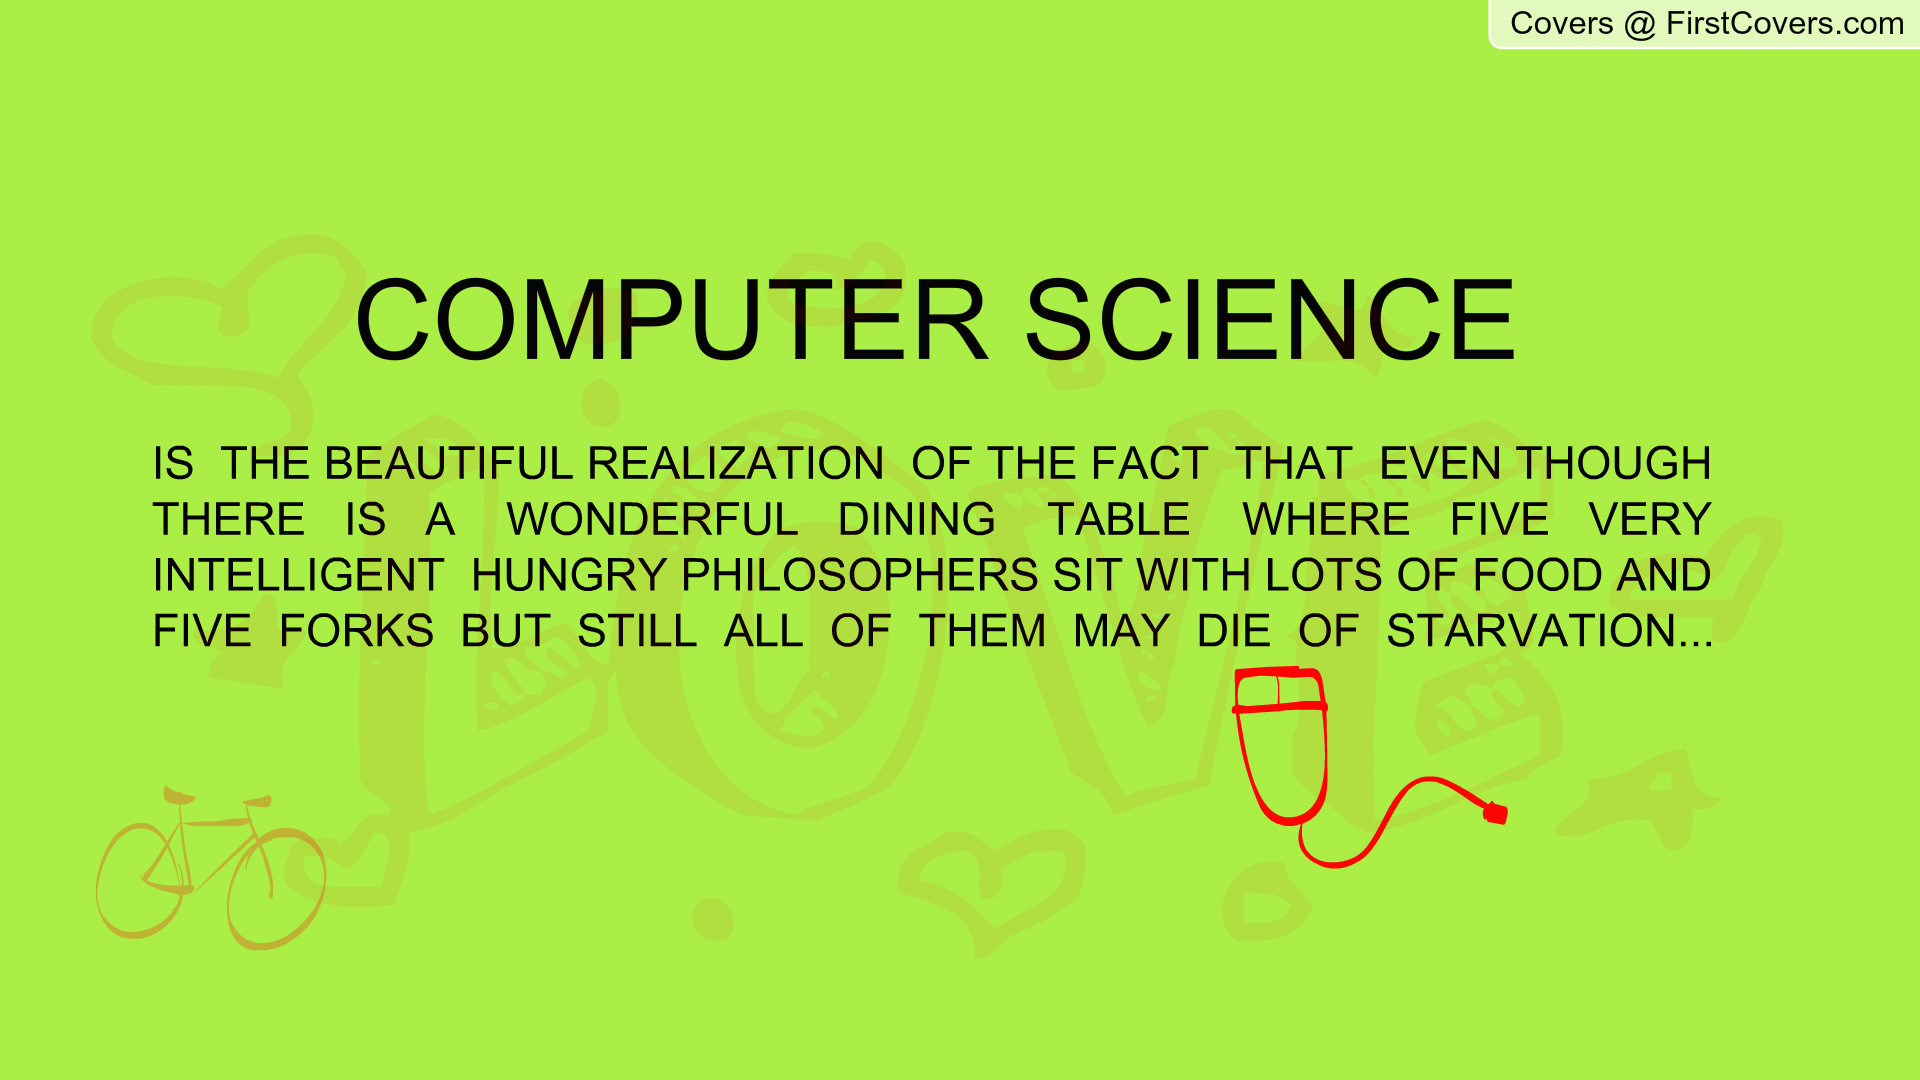 Computer Science Backgrounds Free Download